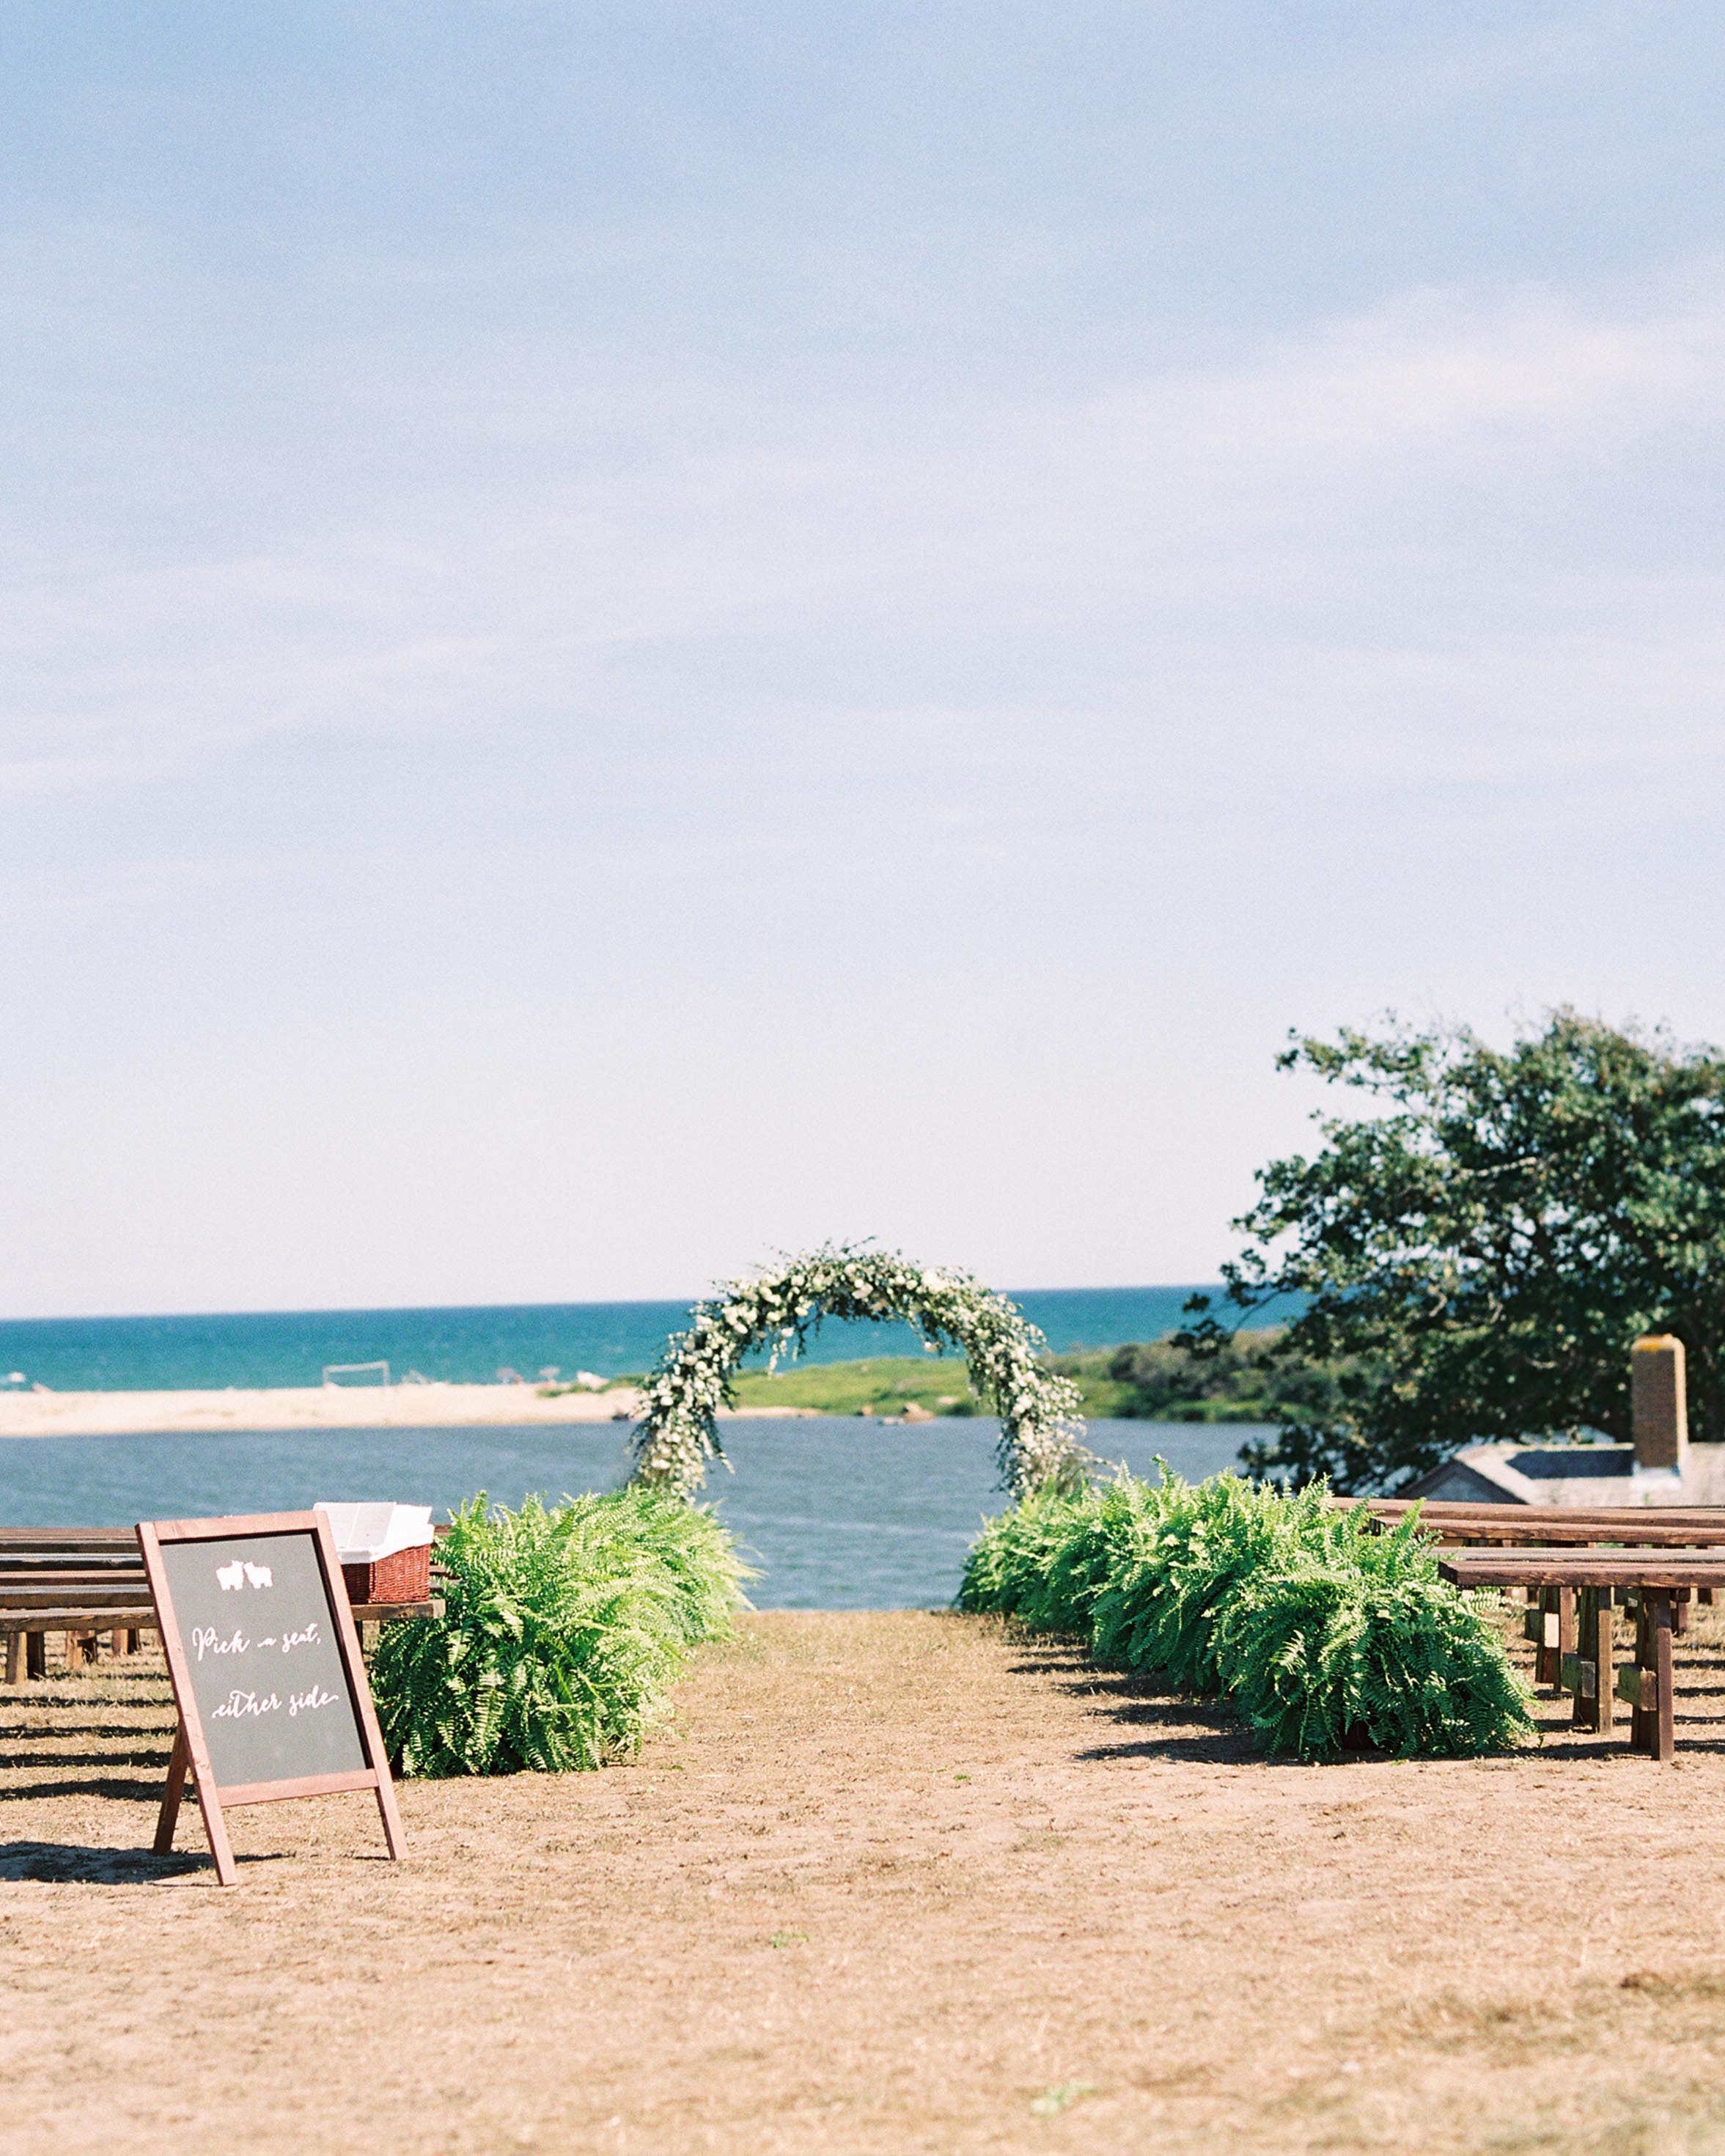 floral arch and wooden benches on beach front wedding ceremony venue